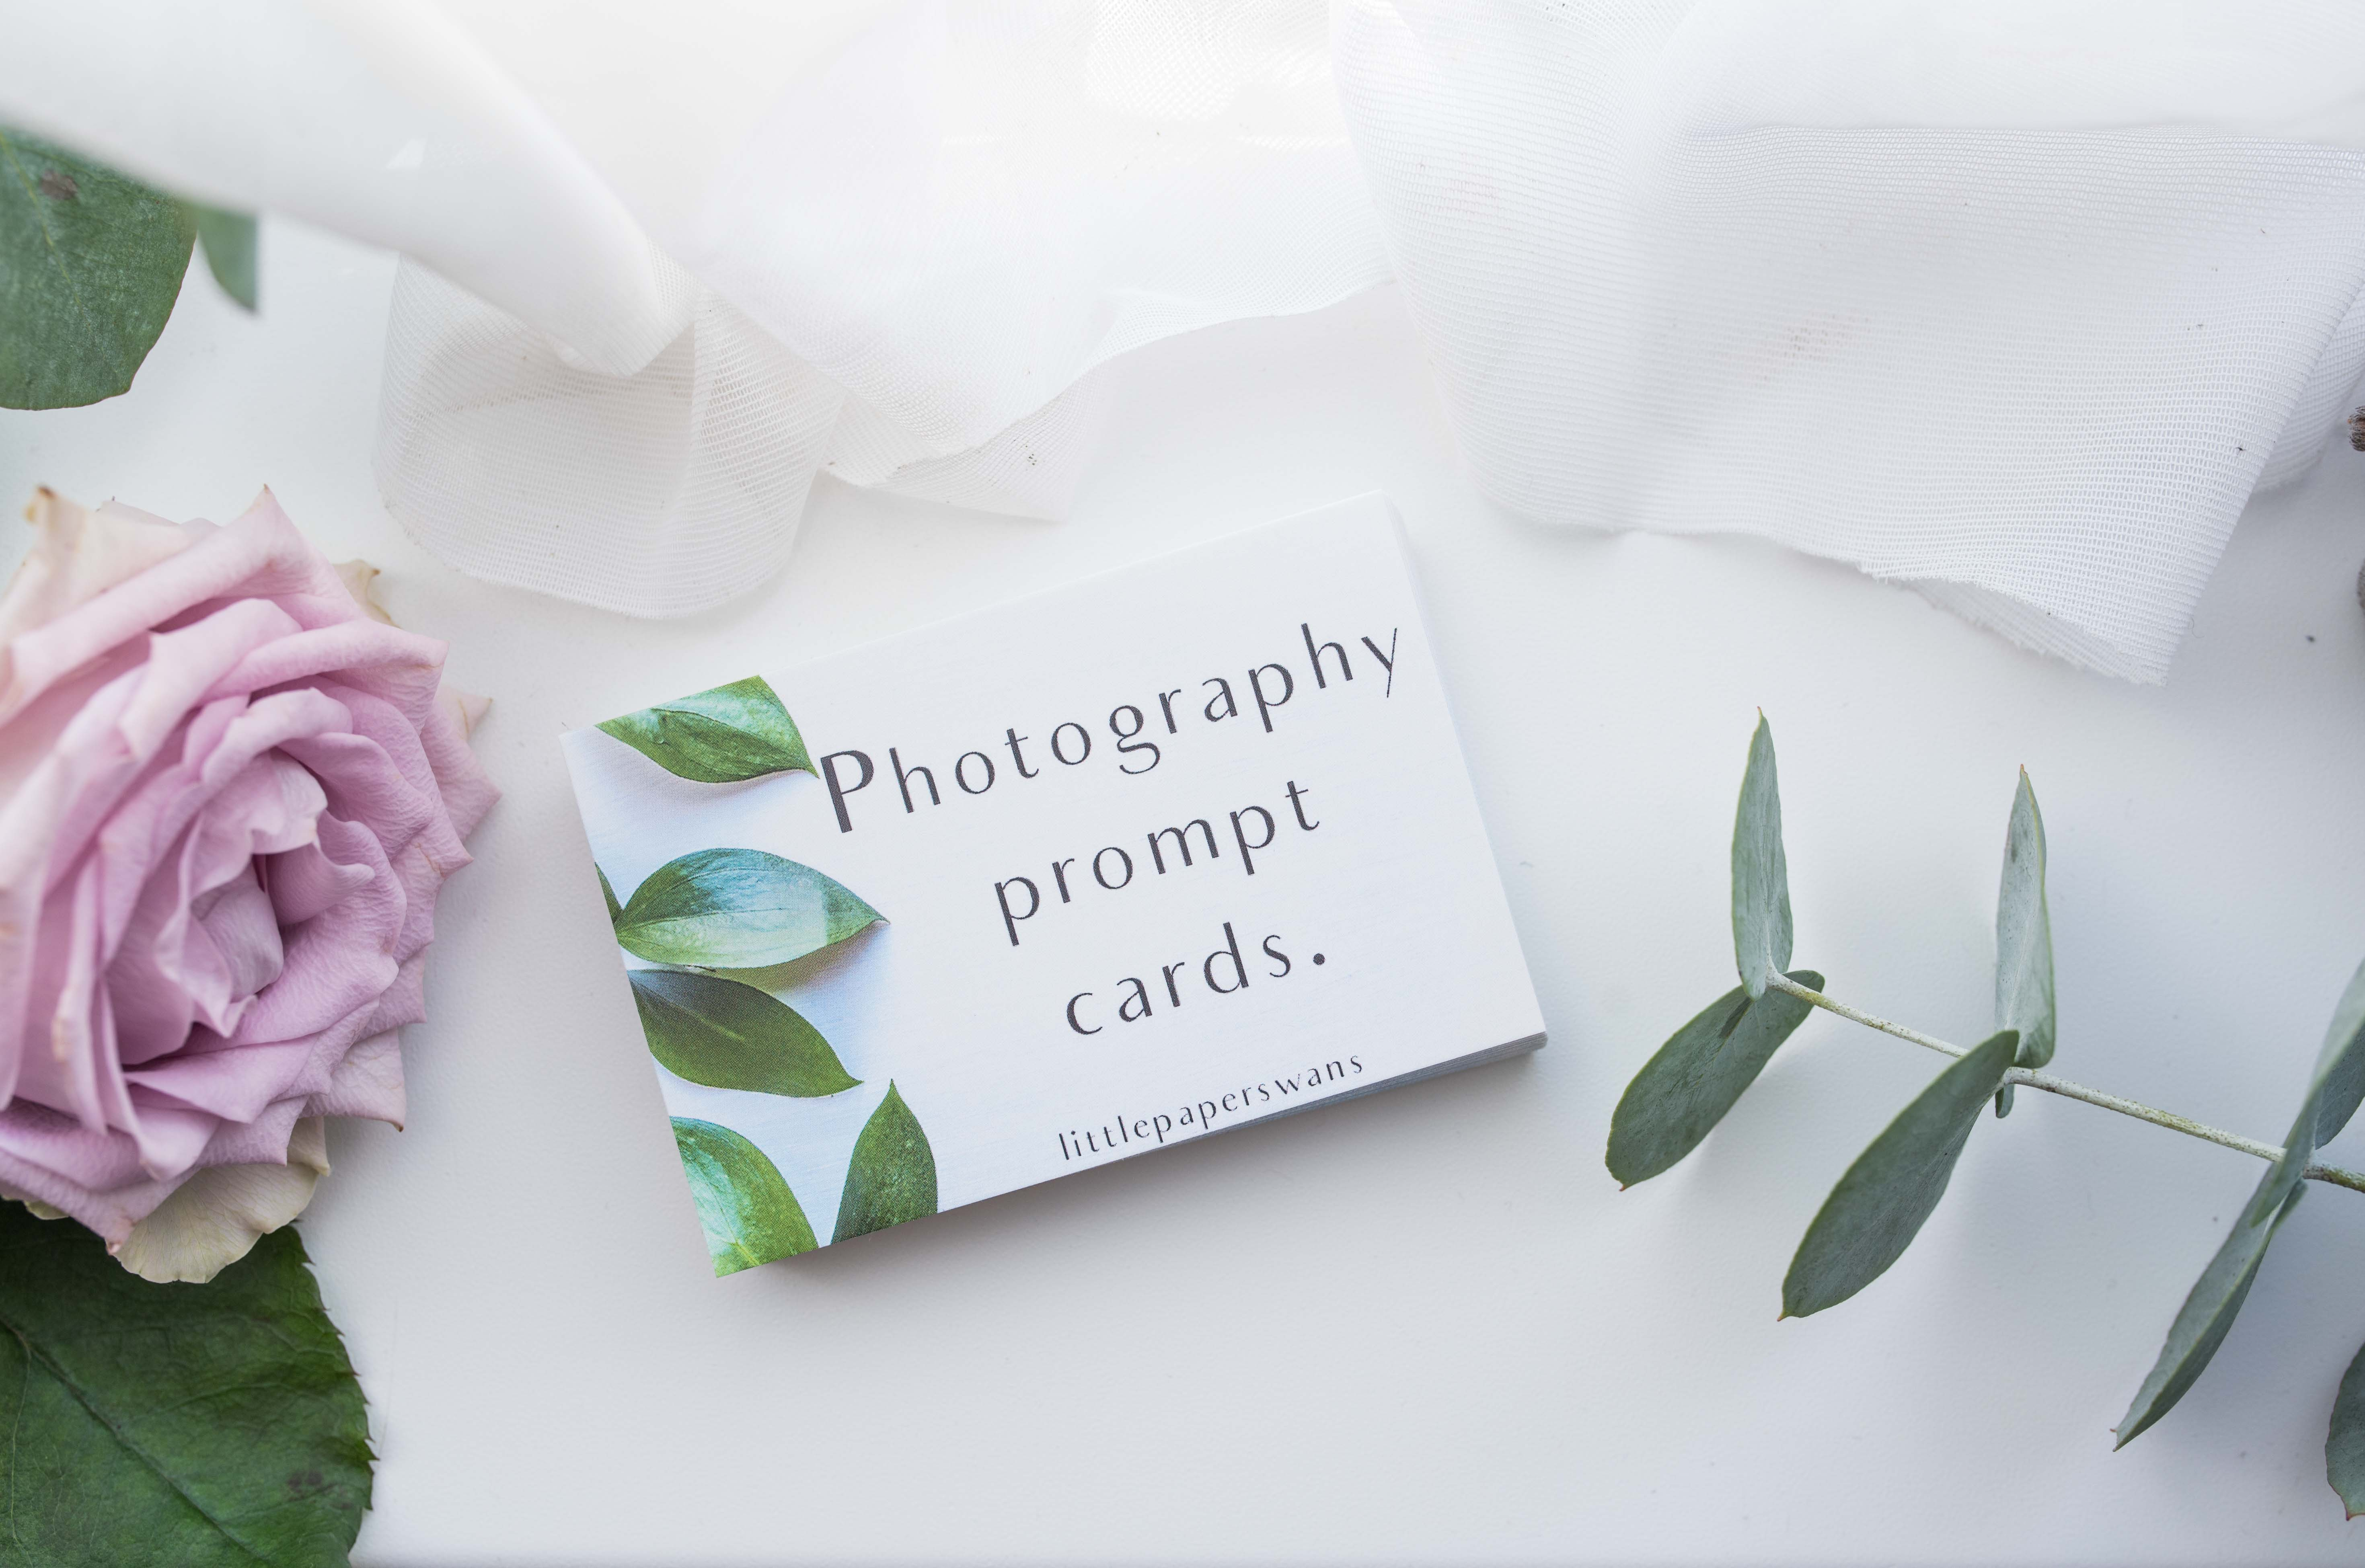 Photography Prompt Cards